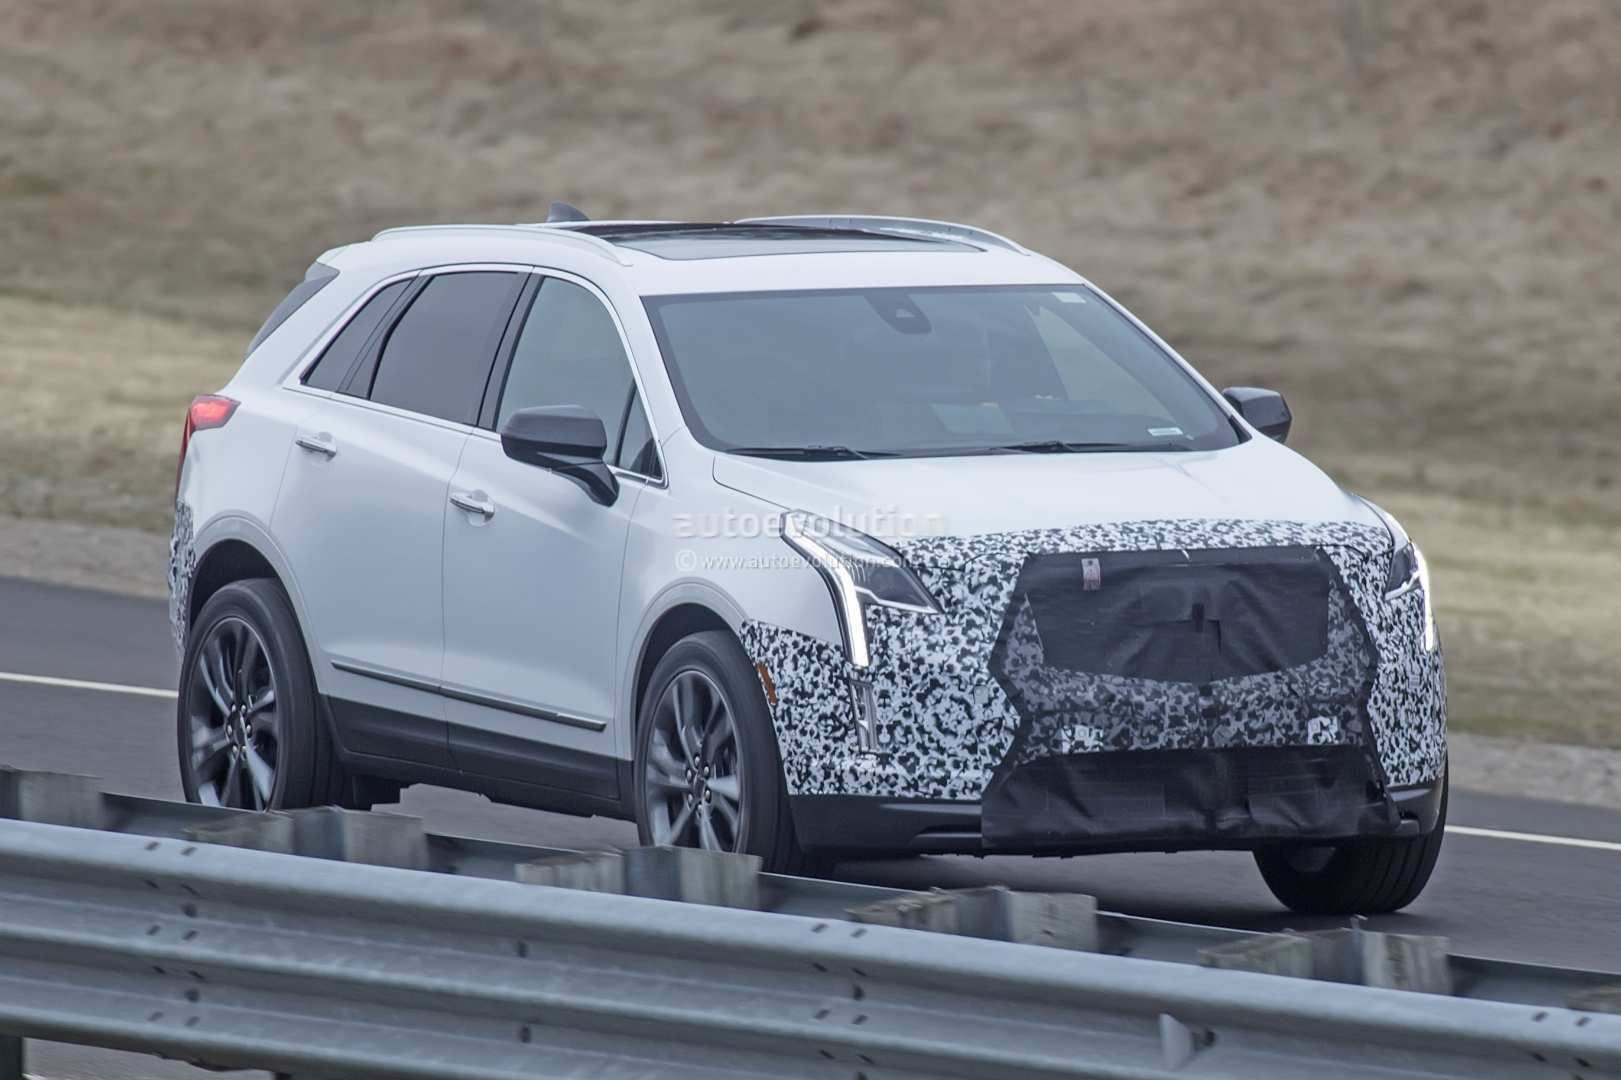 18 All New Spy Shots Cadillac Xt5 Engine